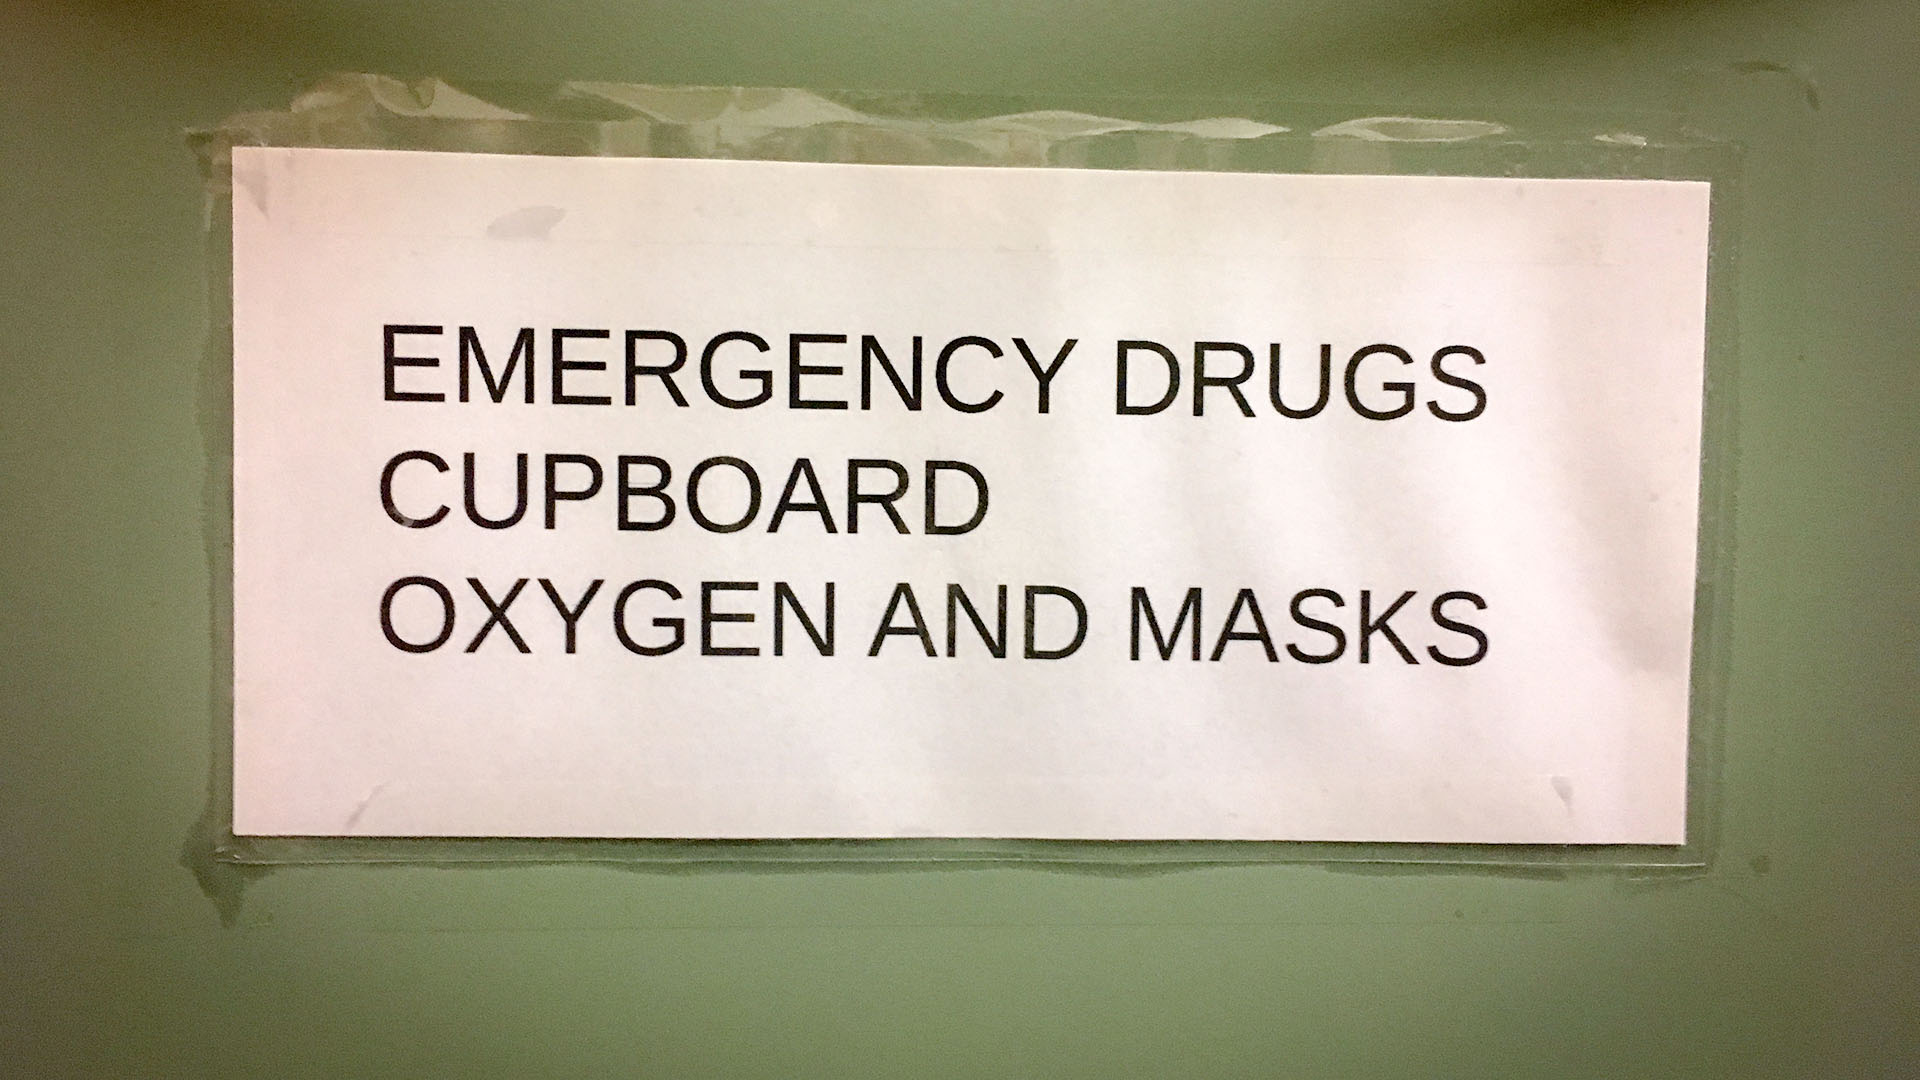 Cupboard with drugs in